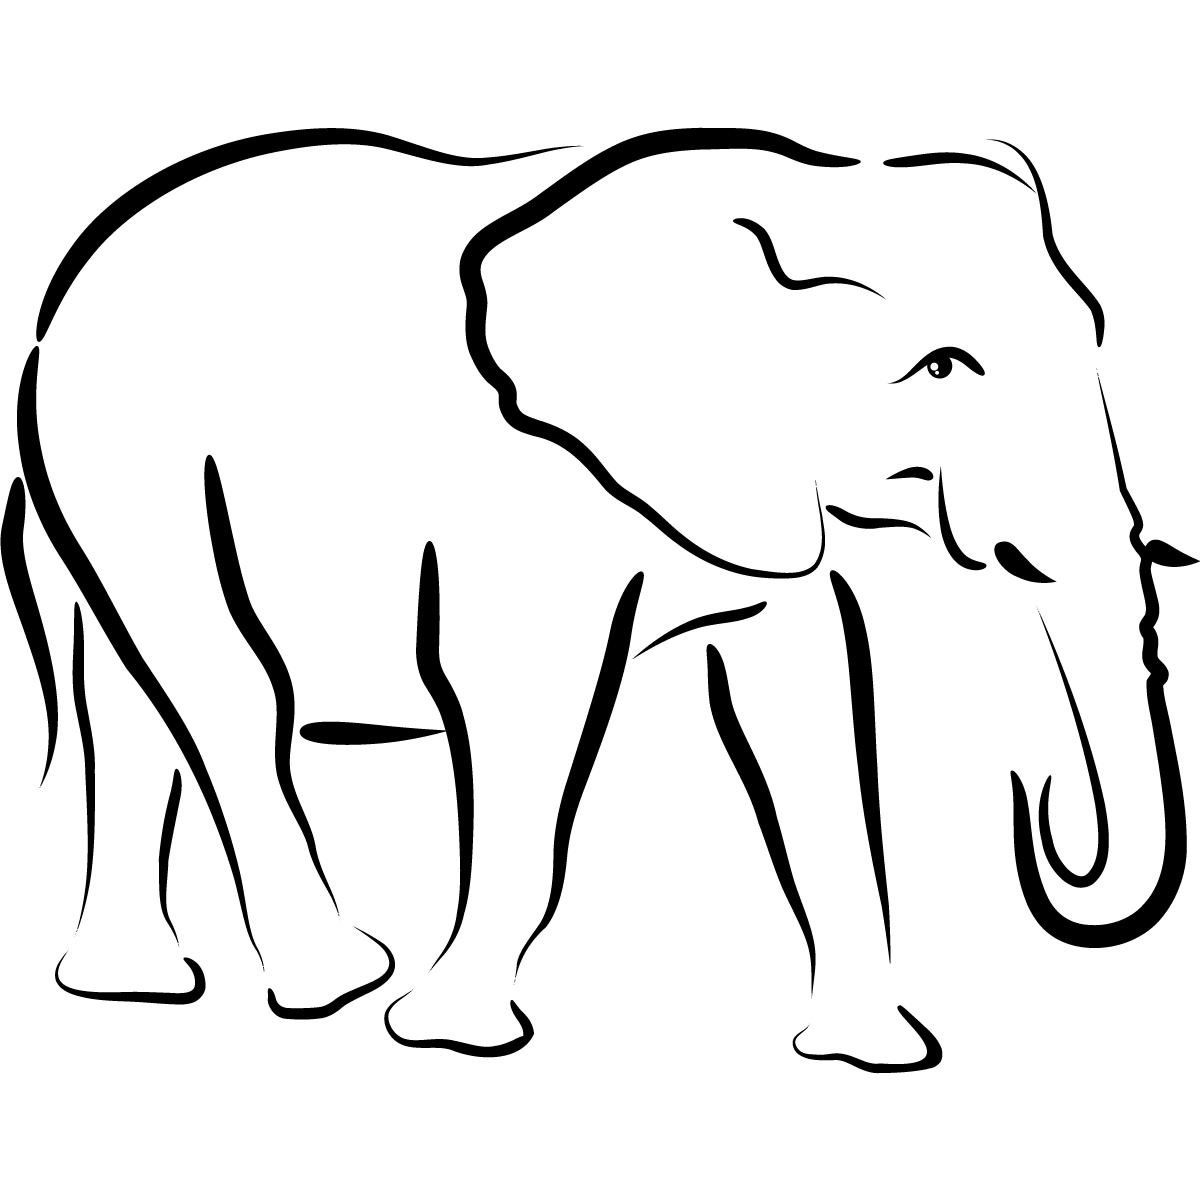 Free Elephant Outline Cliparts Download Free Clip Art Free Clip Art On Clipart Library